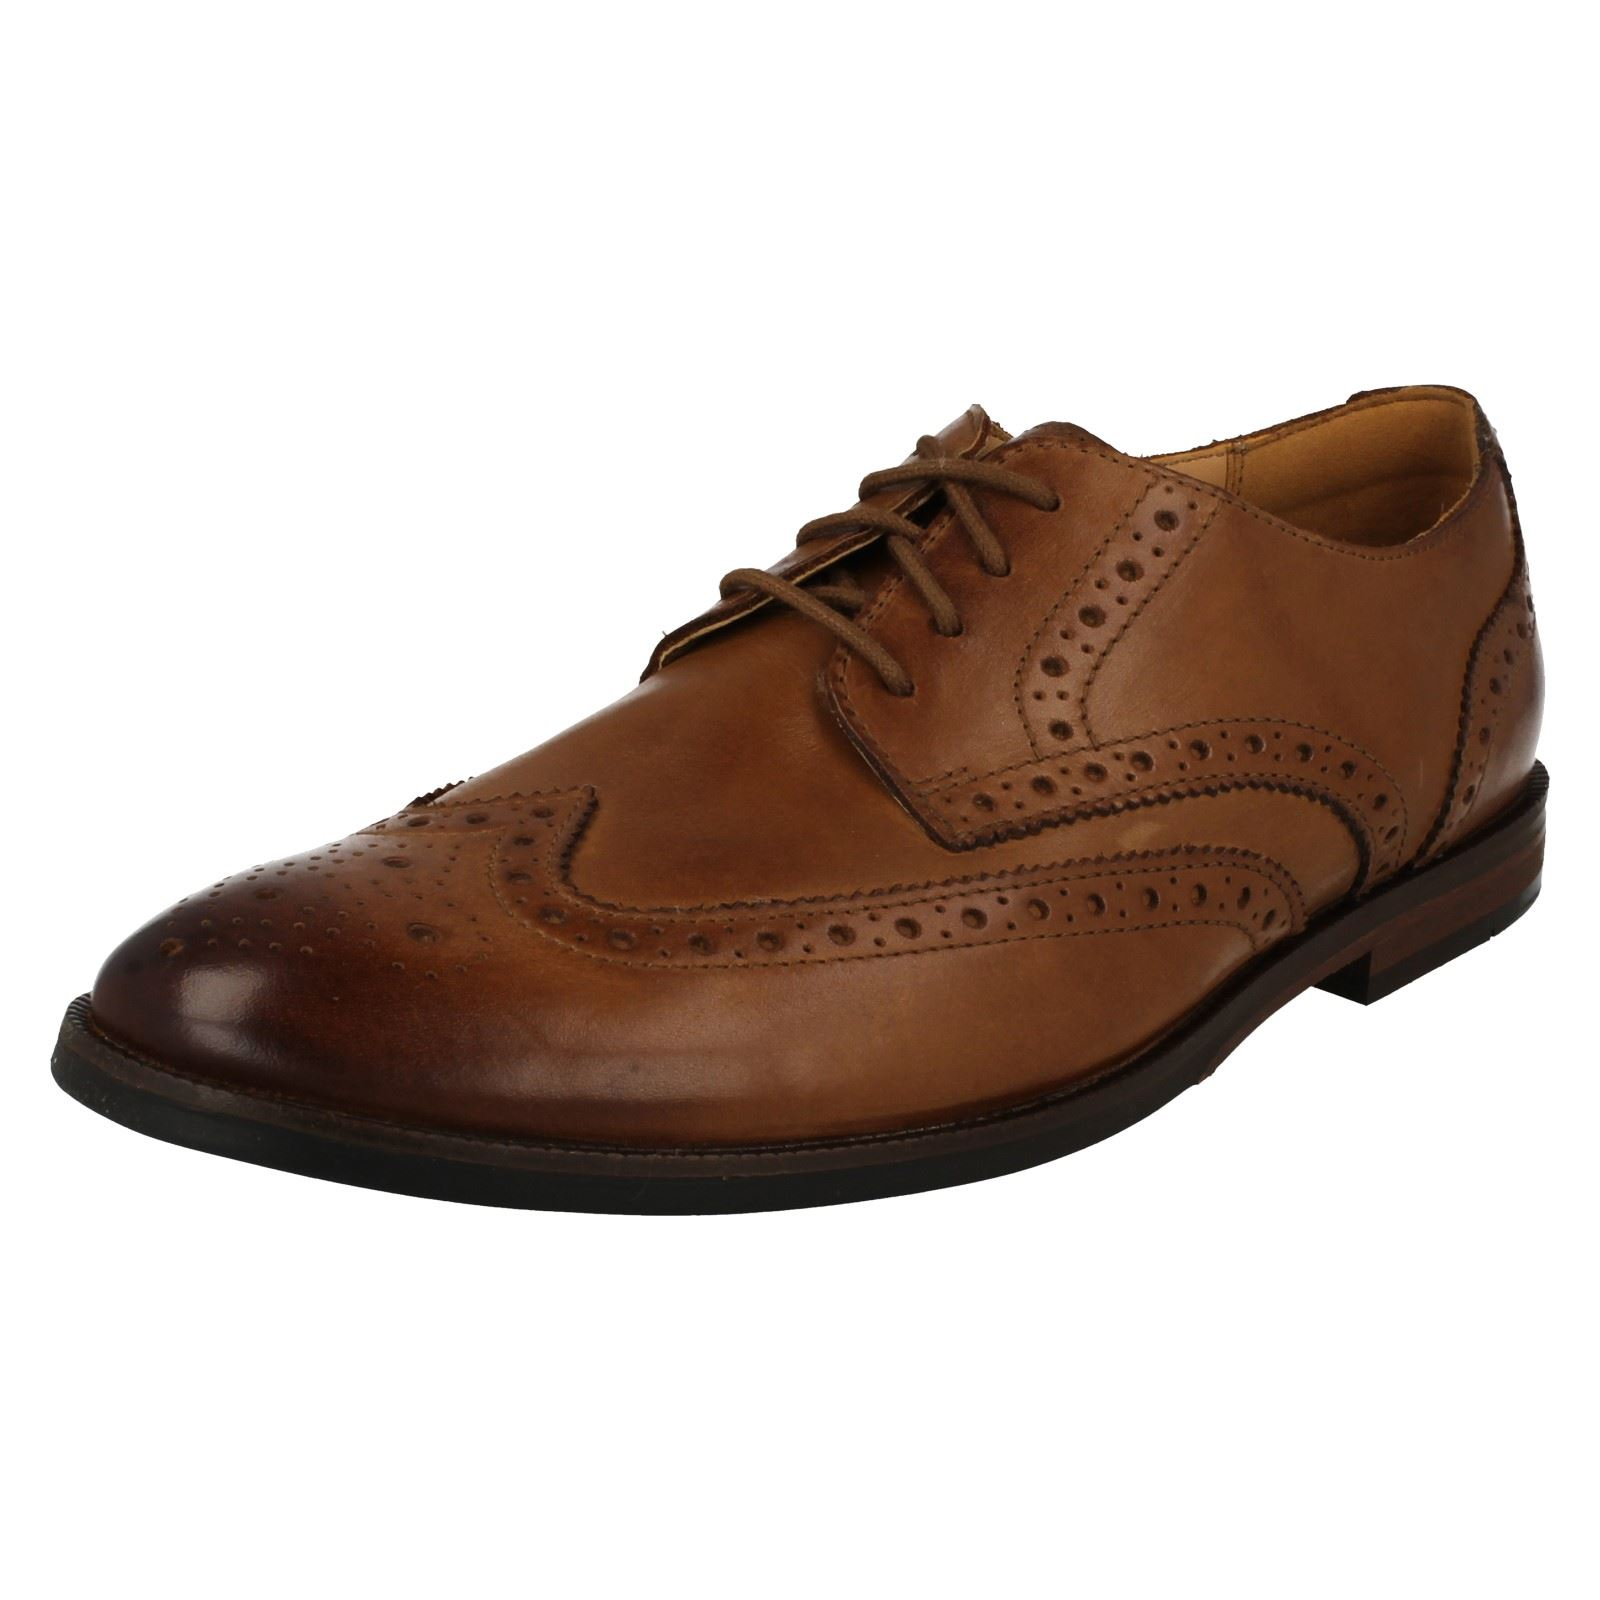 cd92b9dc8bce18 Uomo Clarks Scarpe Stringate Brogue  Broyd Limitate